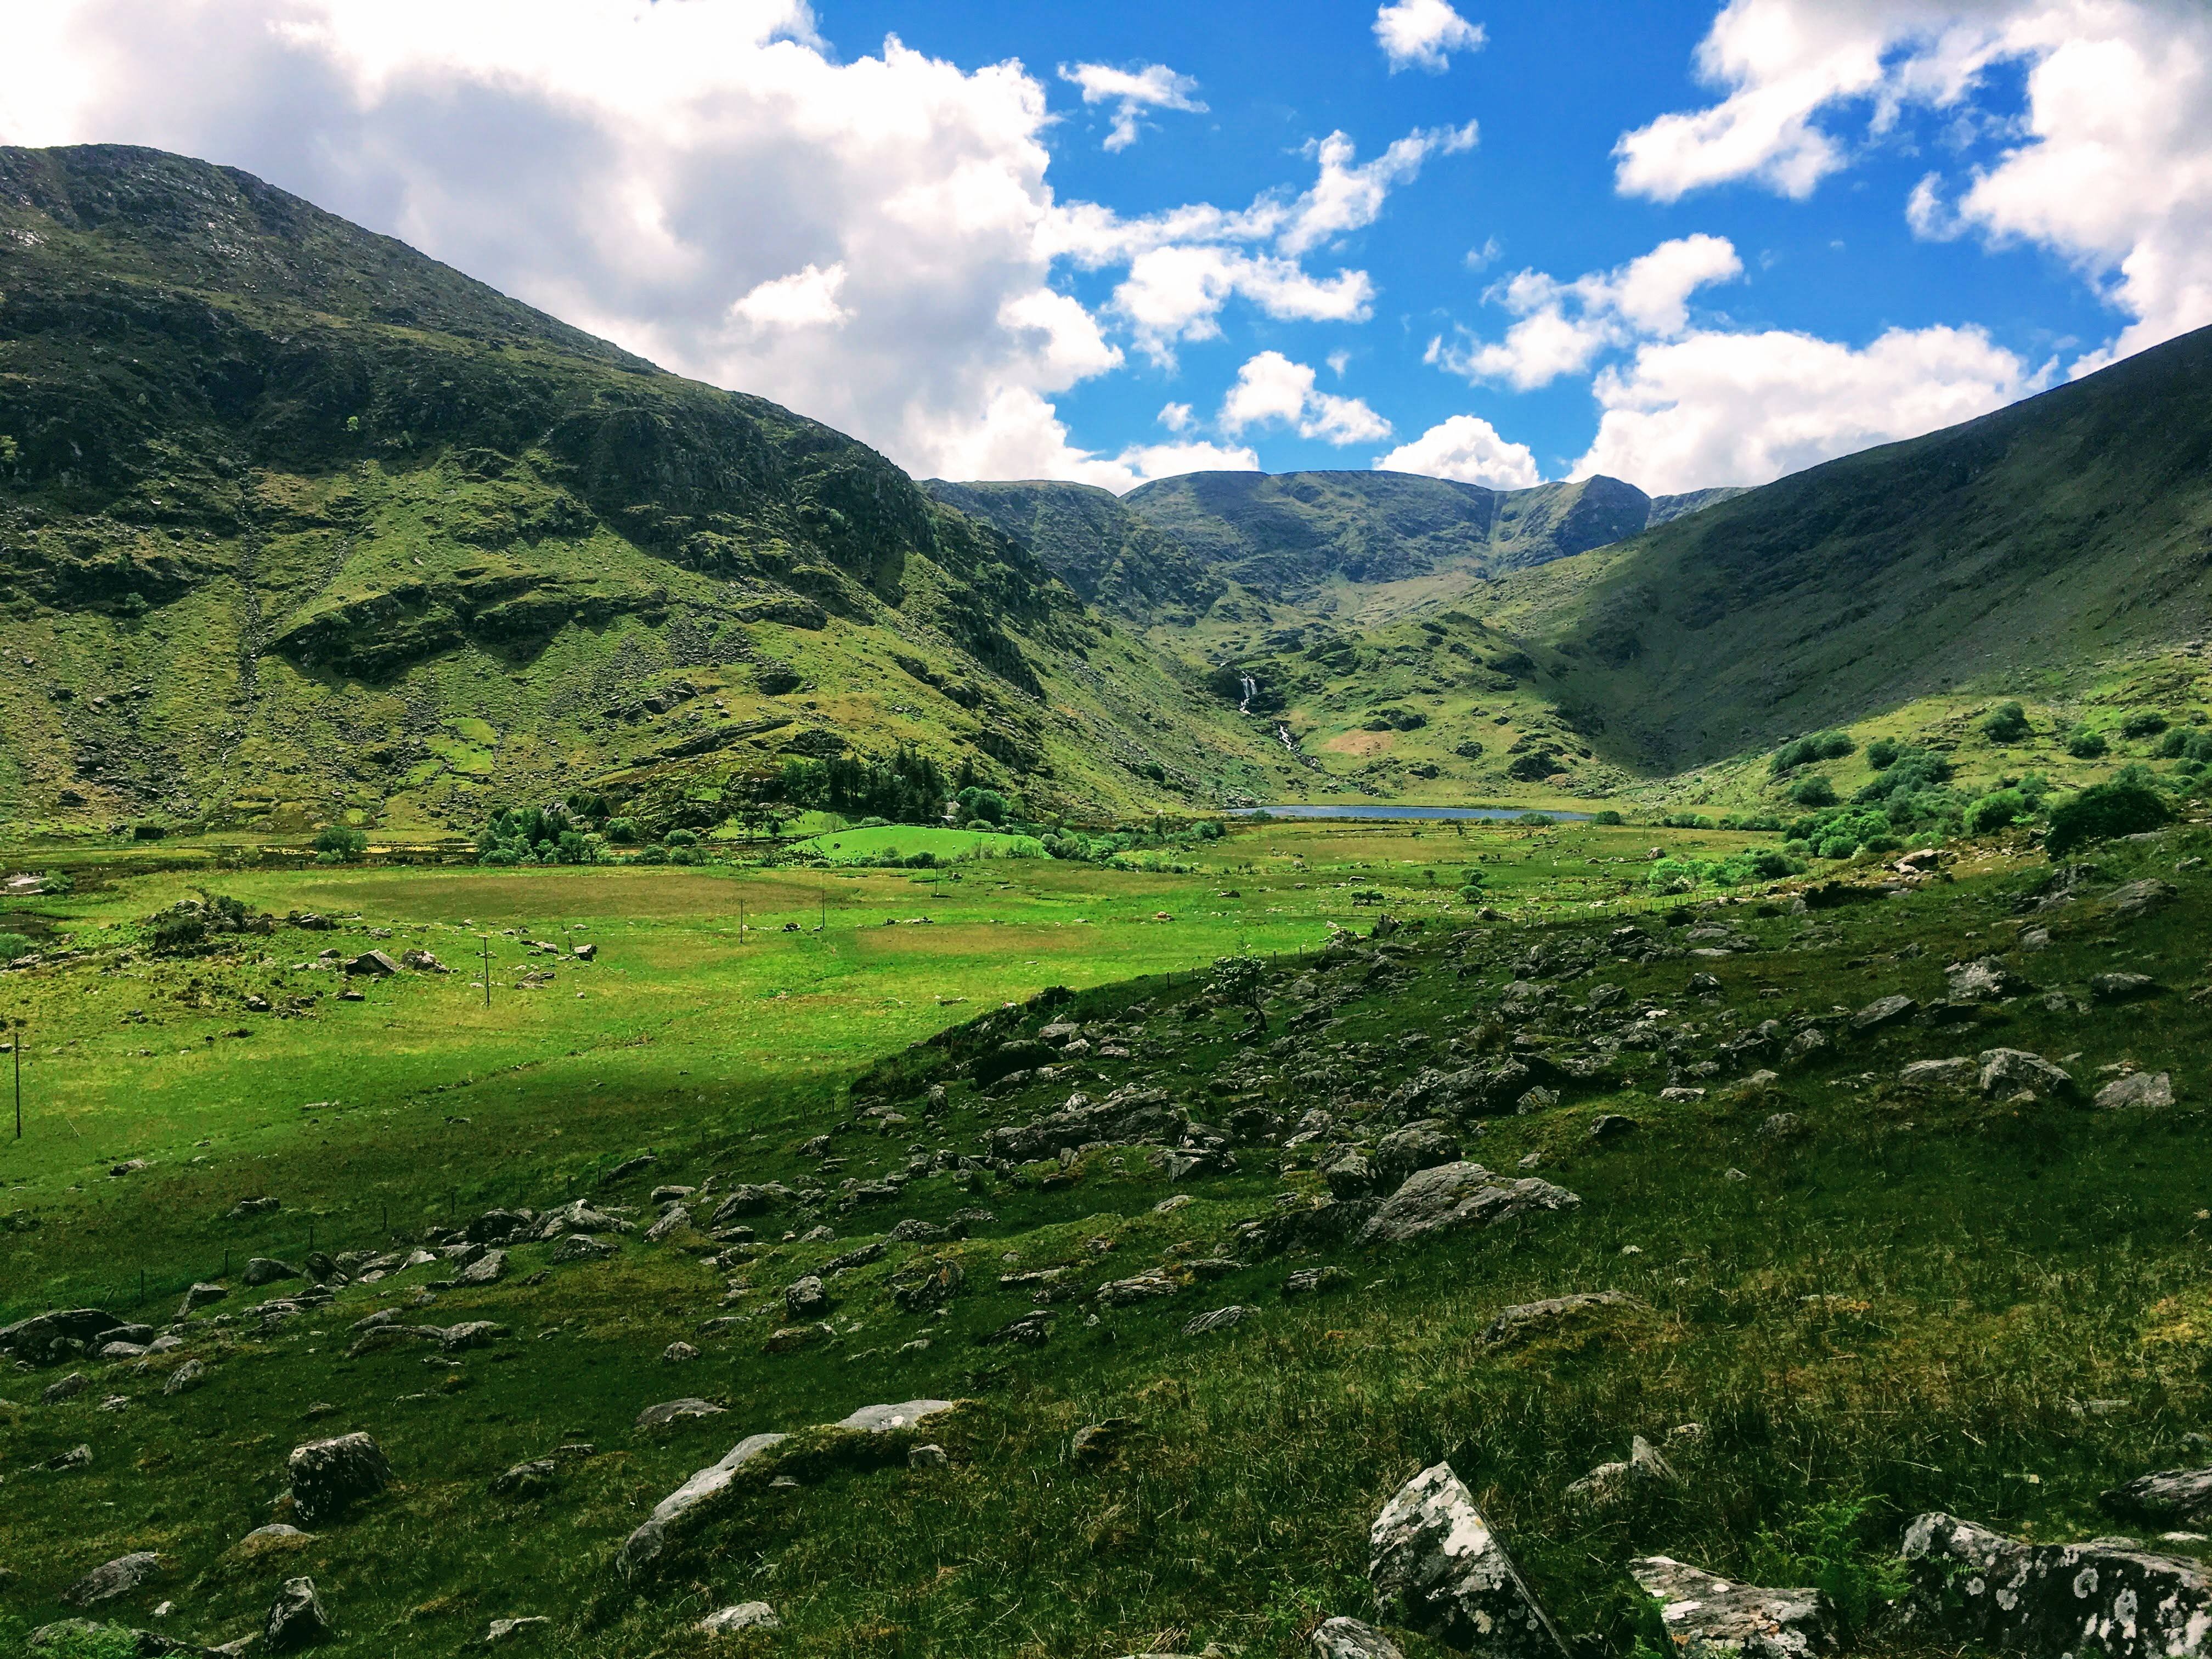 Walk to this beautiful valley via the Kerry Way out of Killarney